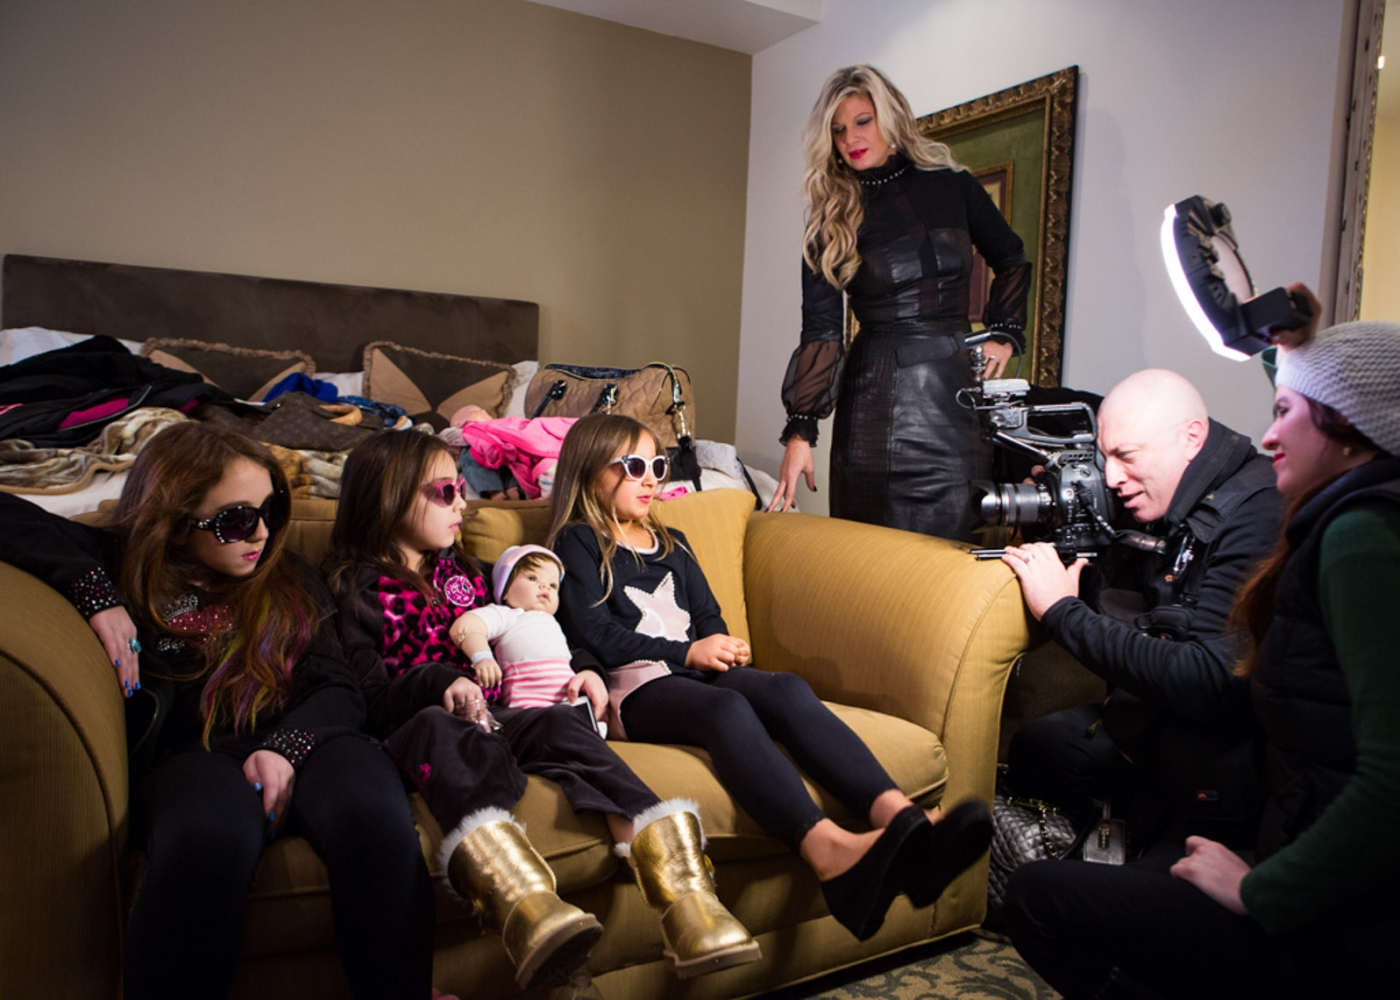 Former Toddler and Tiaras  star Isabella Barrett and her friends are interviewed for her reality show before the debut of her clothing line Bound by the Crown at New York Fashion Week For Nido Magazine